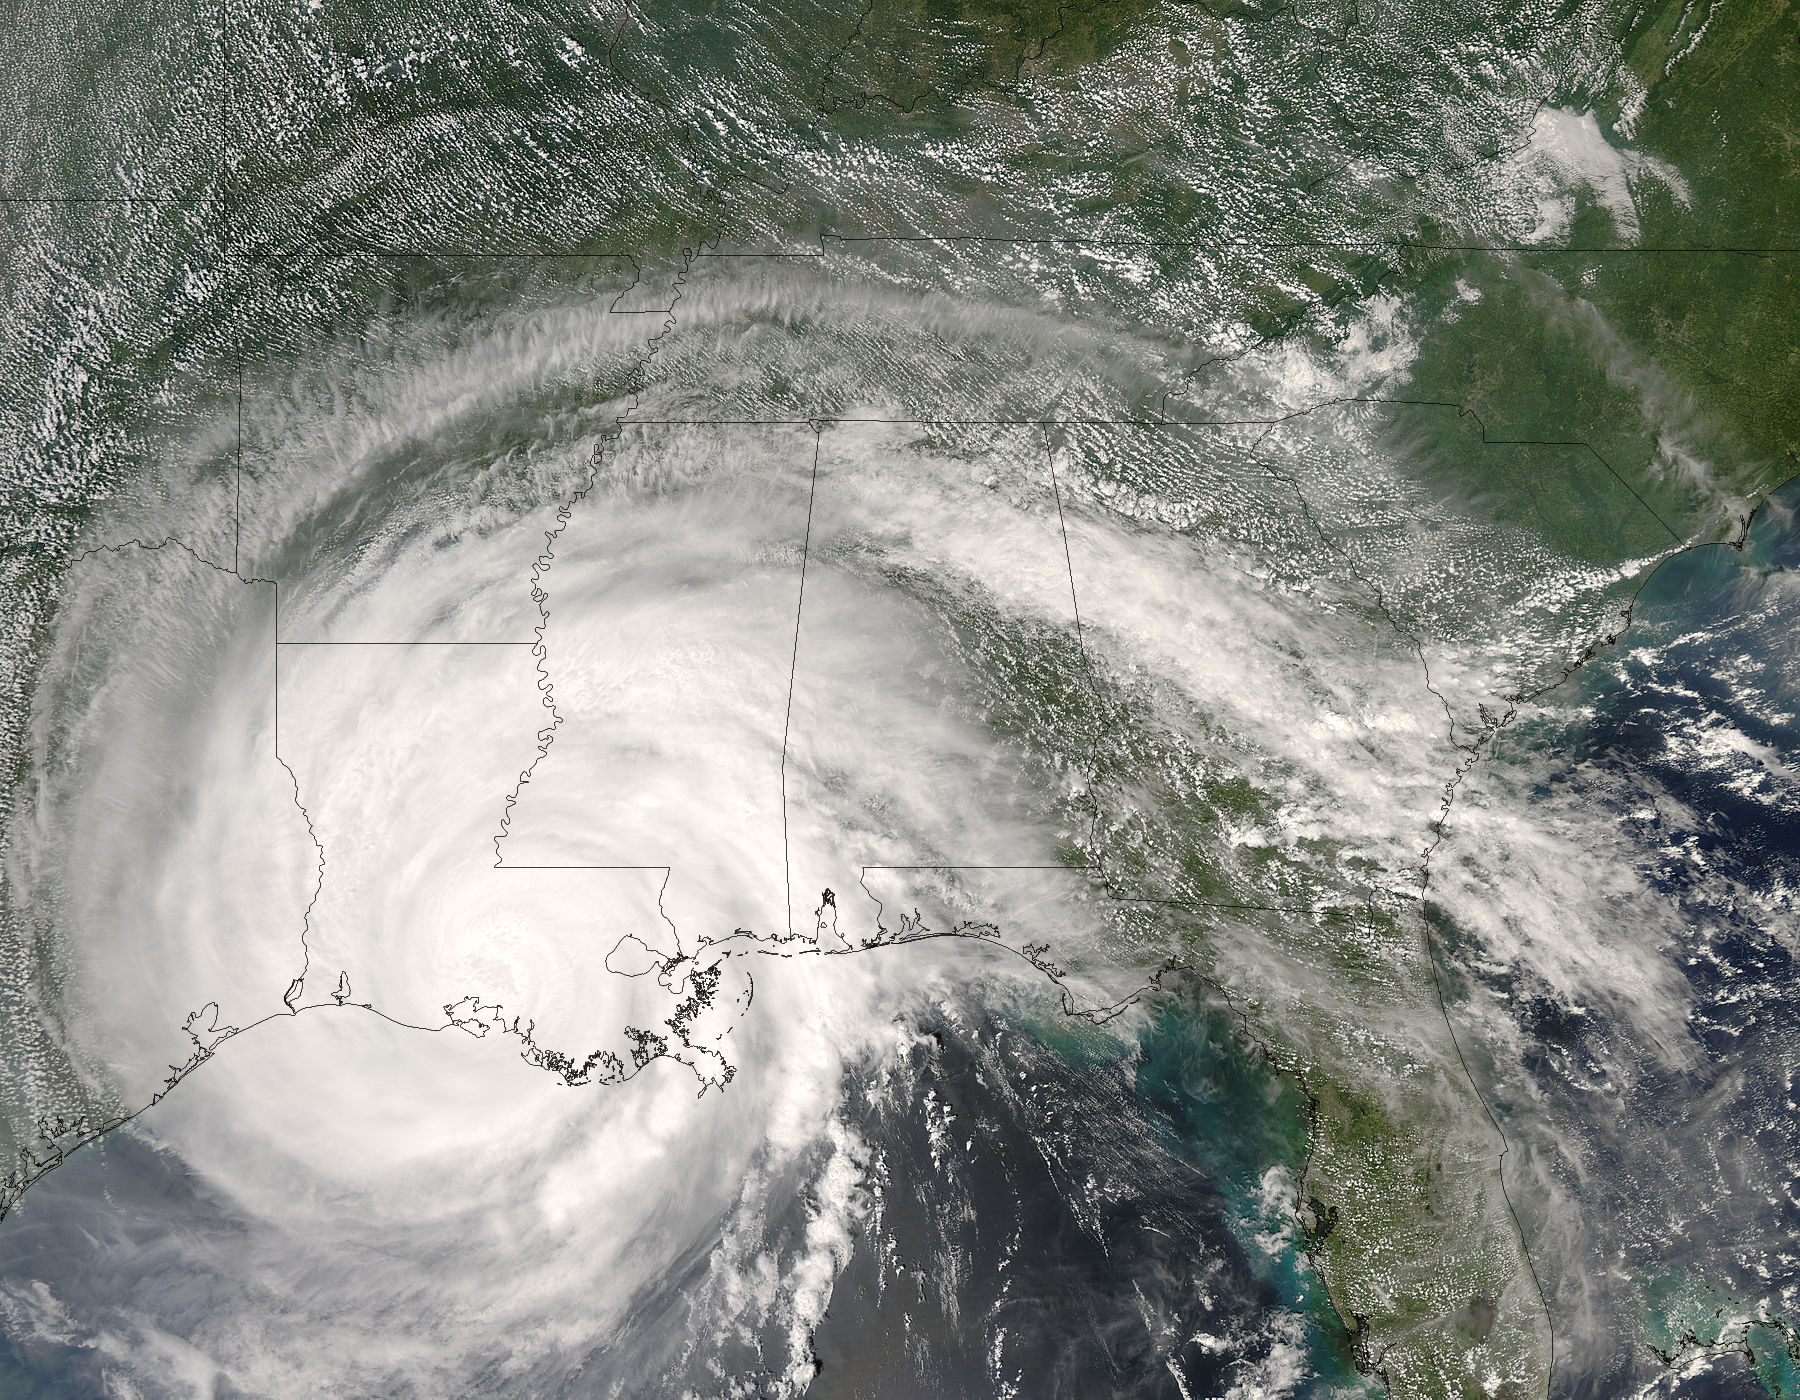 Image of Aqua/MODIS 2008/245 19:00 UTC Hurricane Gustav (07L) over Louisiana, Pixel size 1km